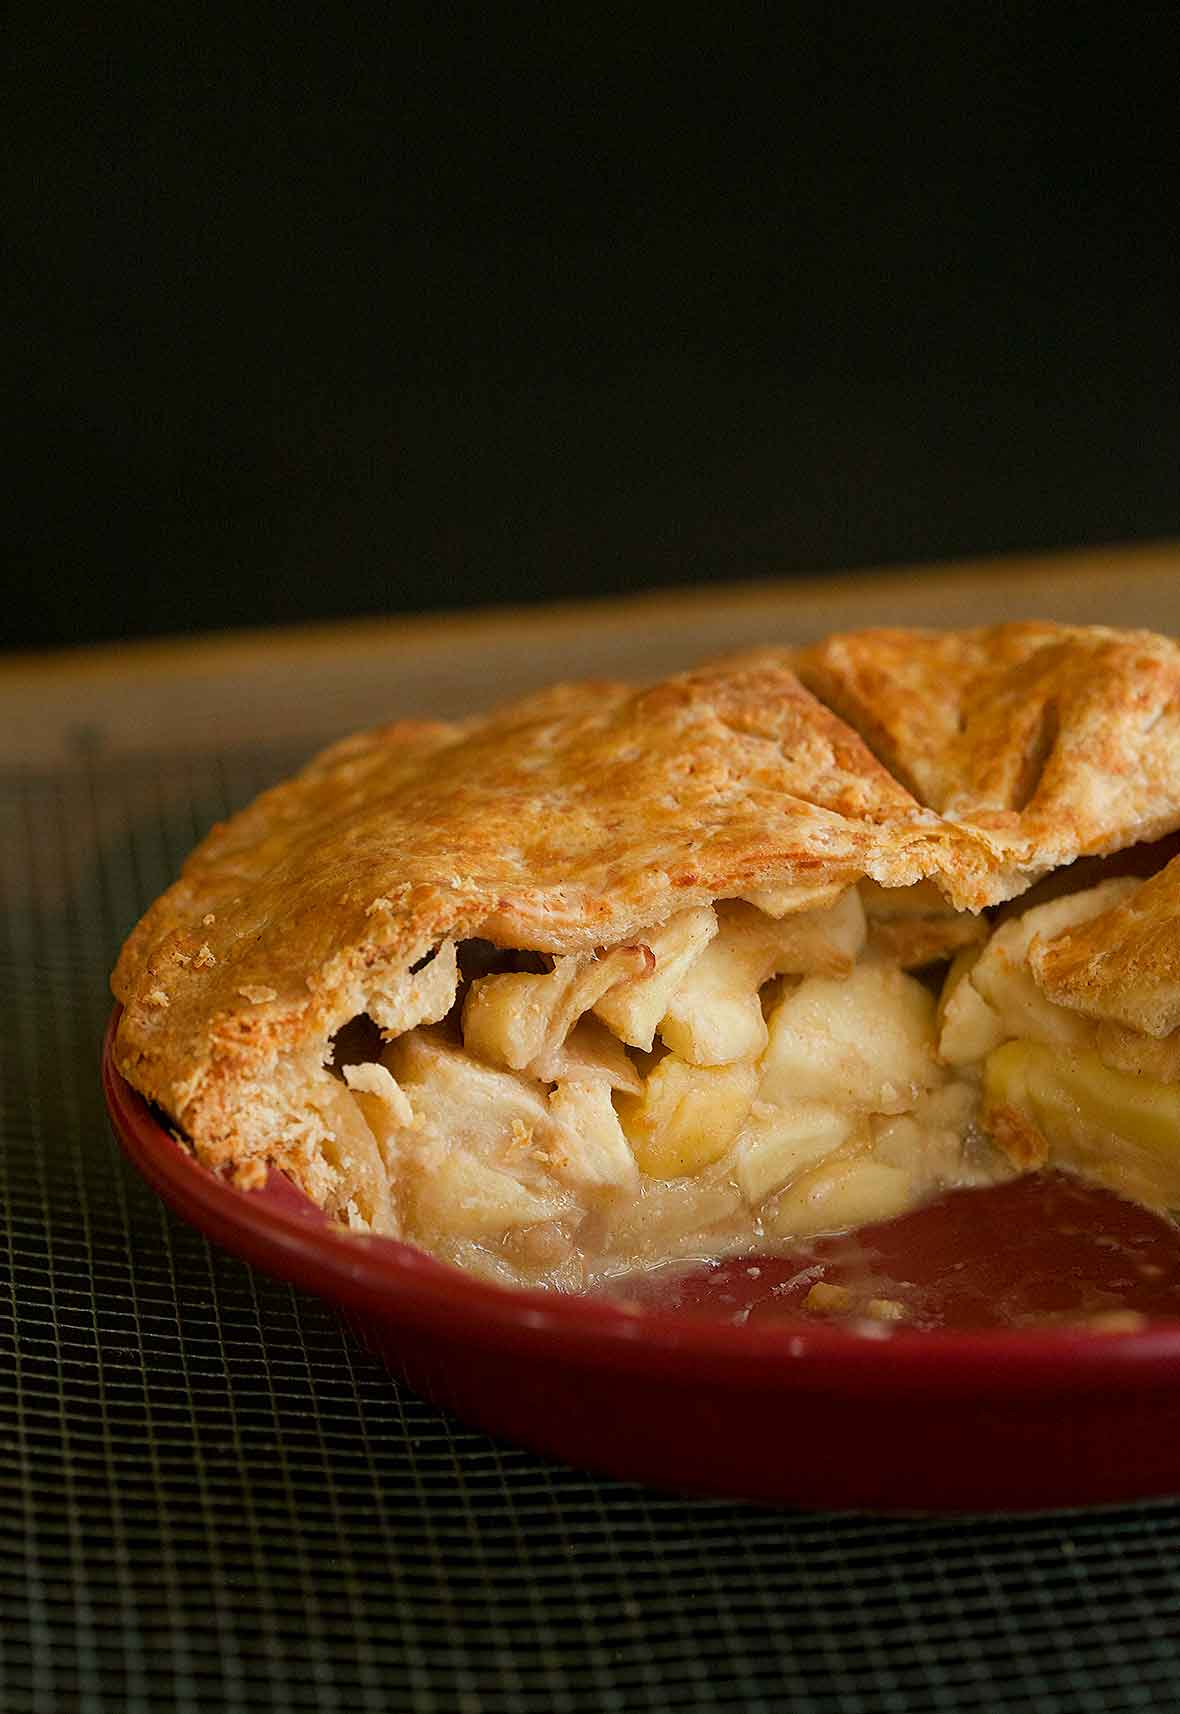 An apple pie with Cheddar crust in a red pie pan cut into to show the Golden Delicious apples inside